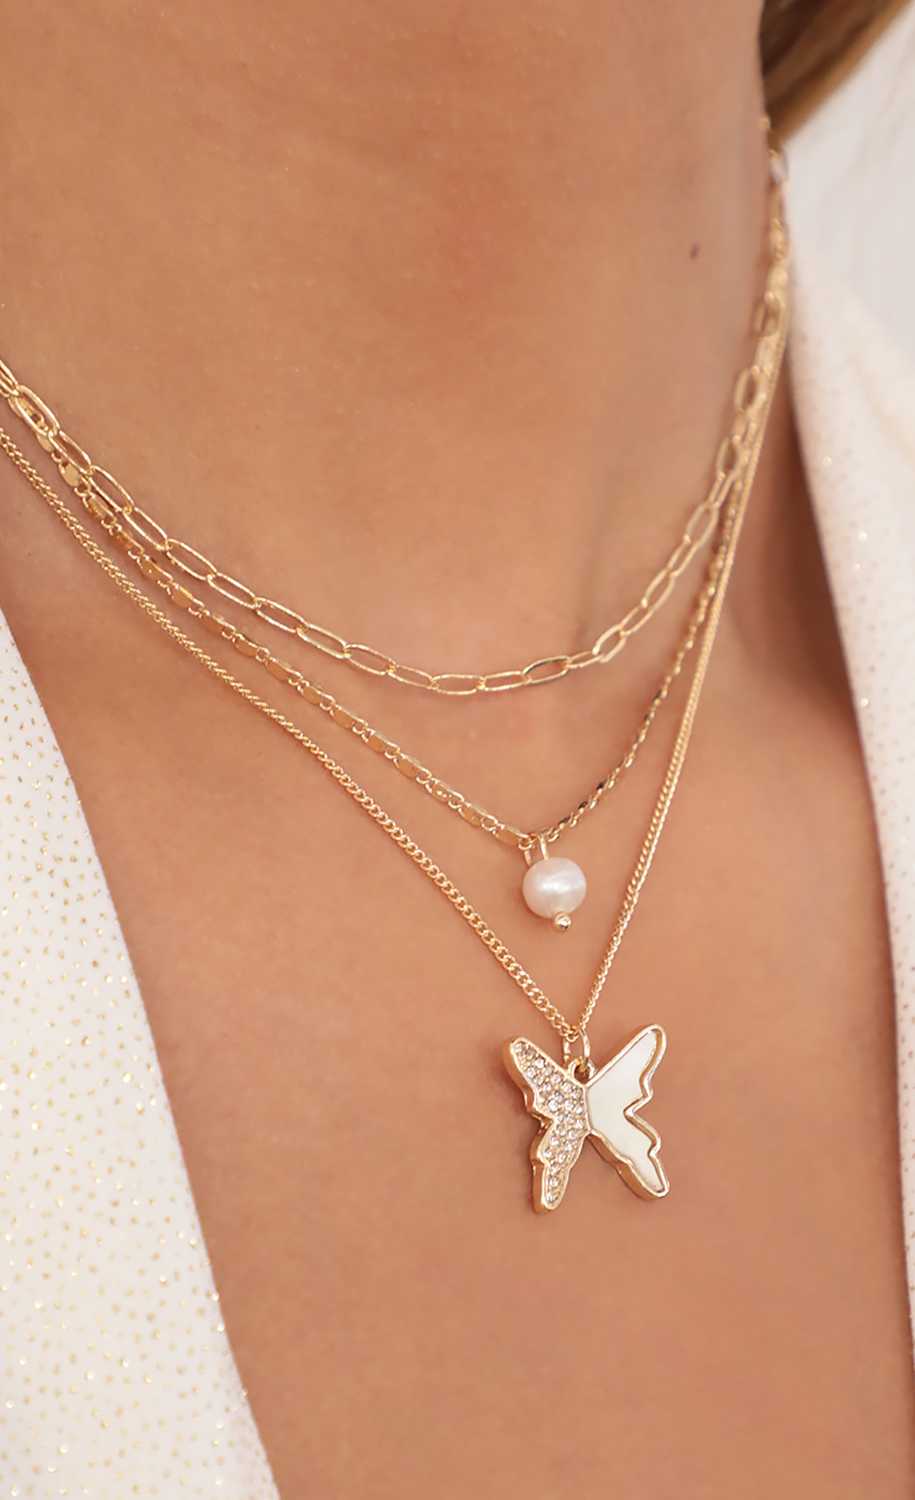 Give Me Wings Layered Necklace